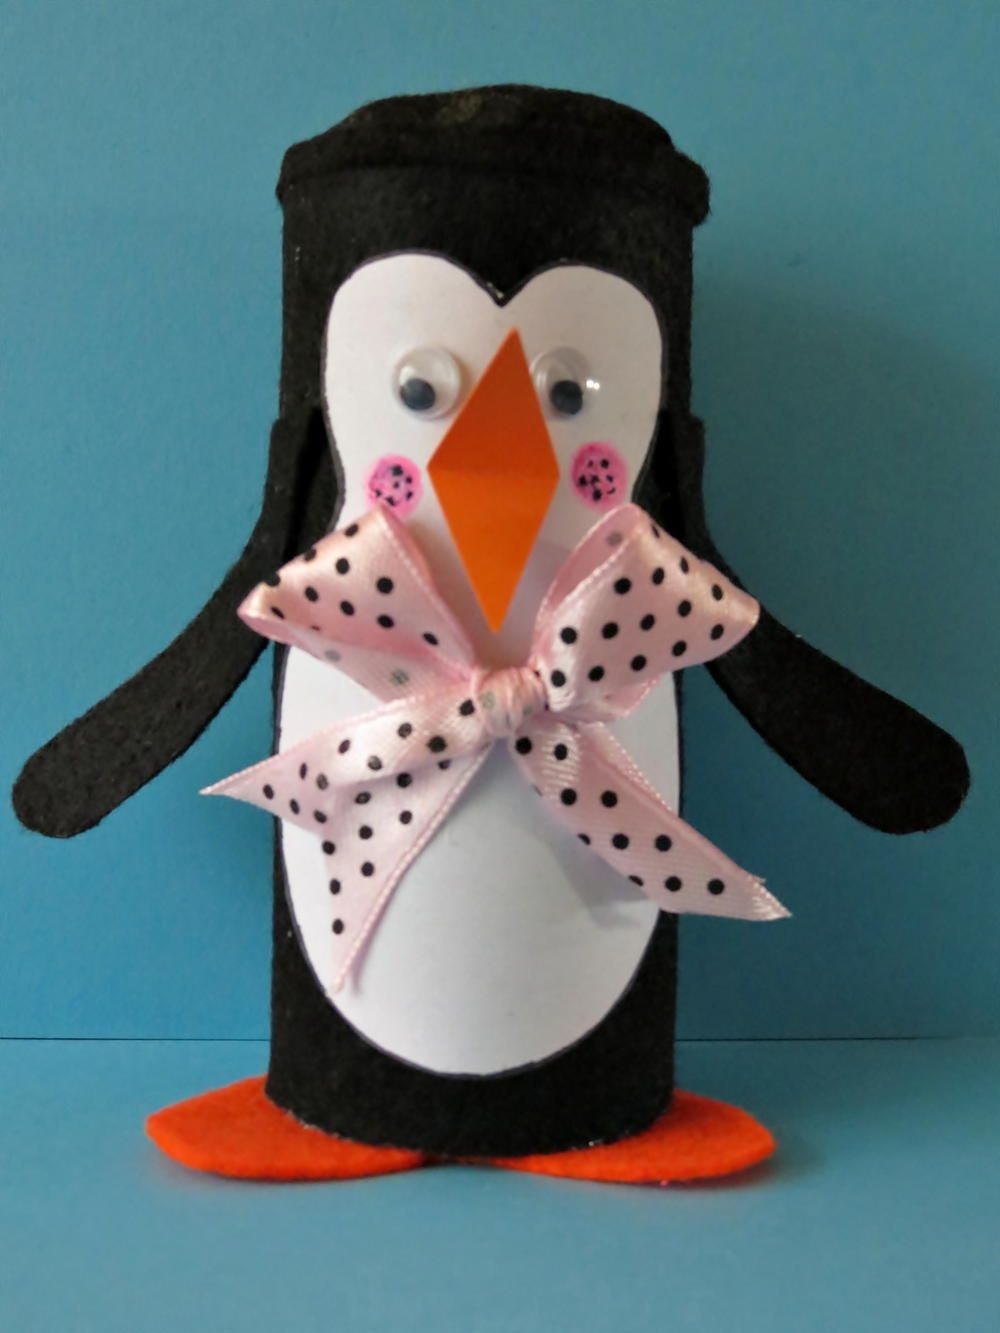 Toilet Paper Roll Penguin : toilet, paper, penguin, Winter, Crafts